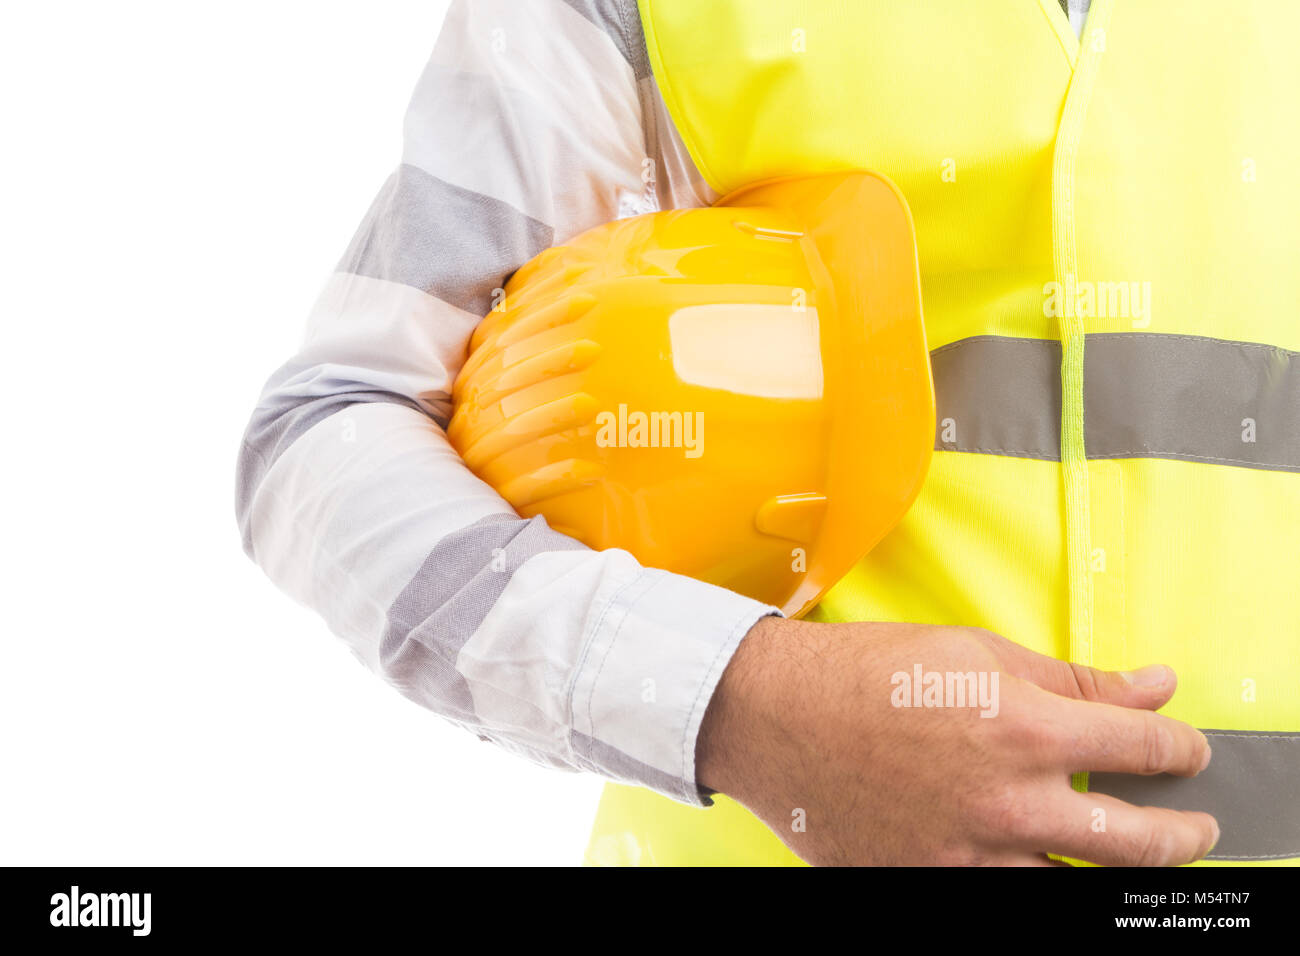 Closeup of a constructor holding yellow worker hat underarm on white copyspace and text area - Stock Image